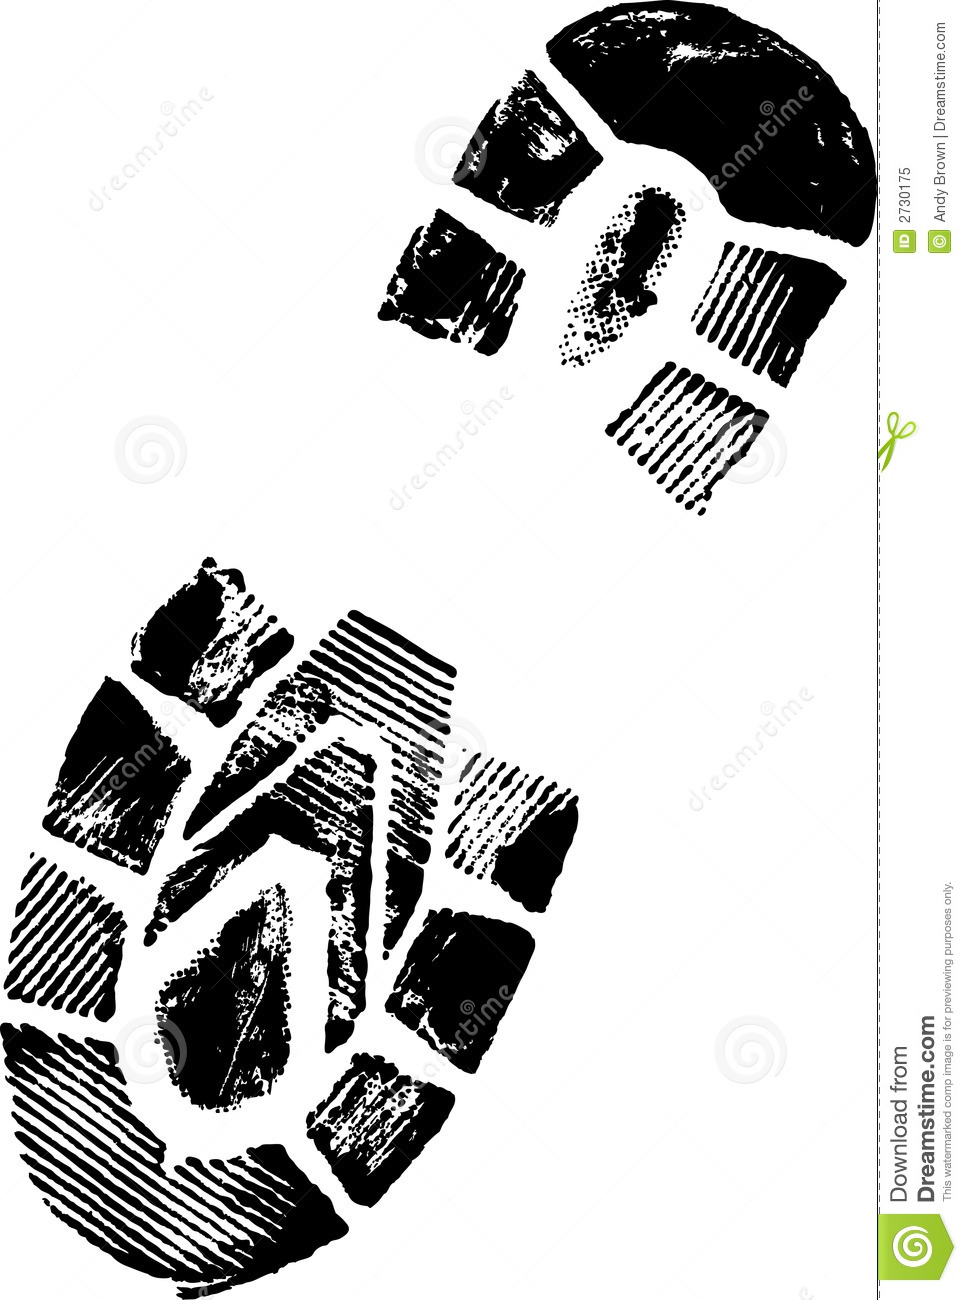 shoe print royalty free stock photo image 2730175